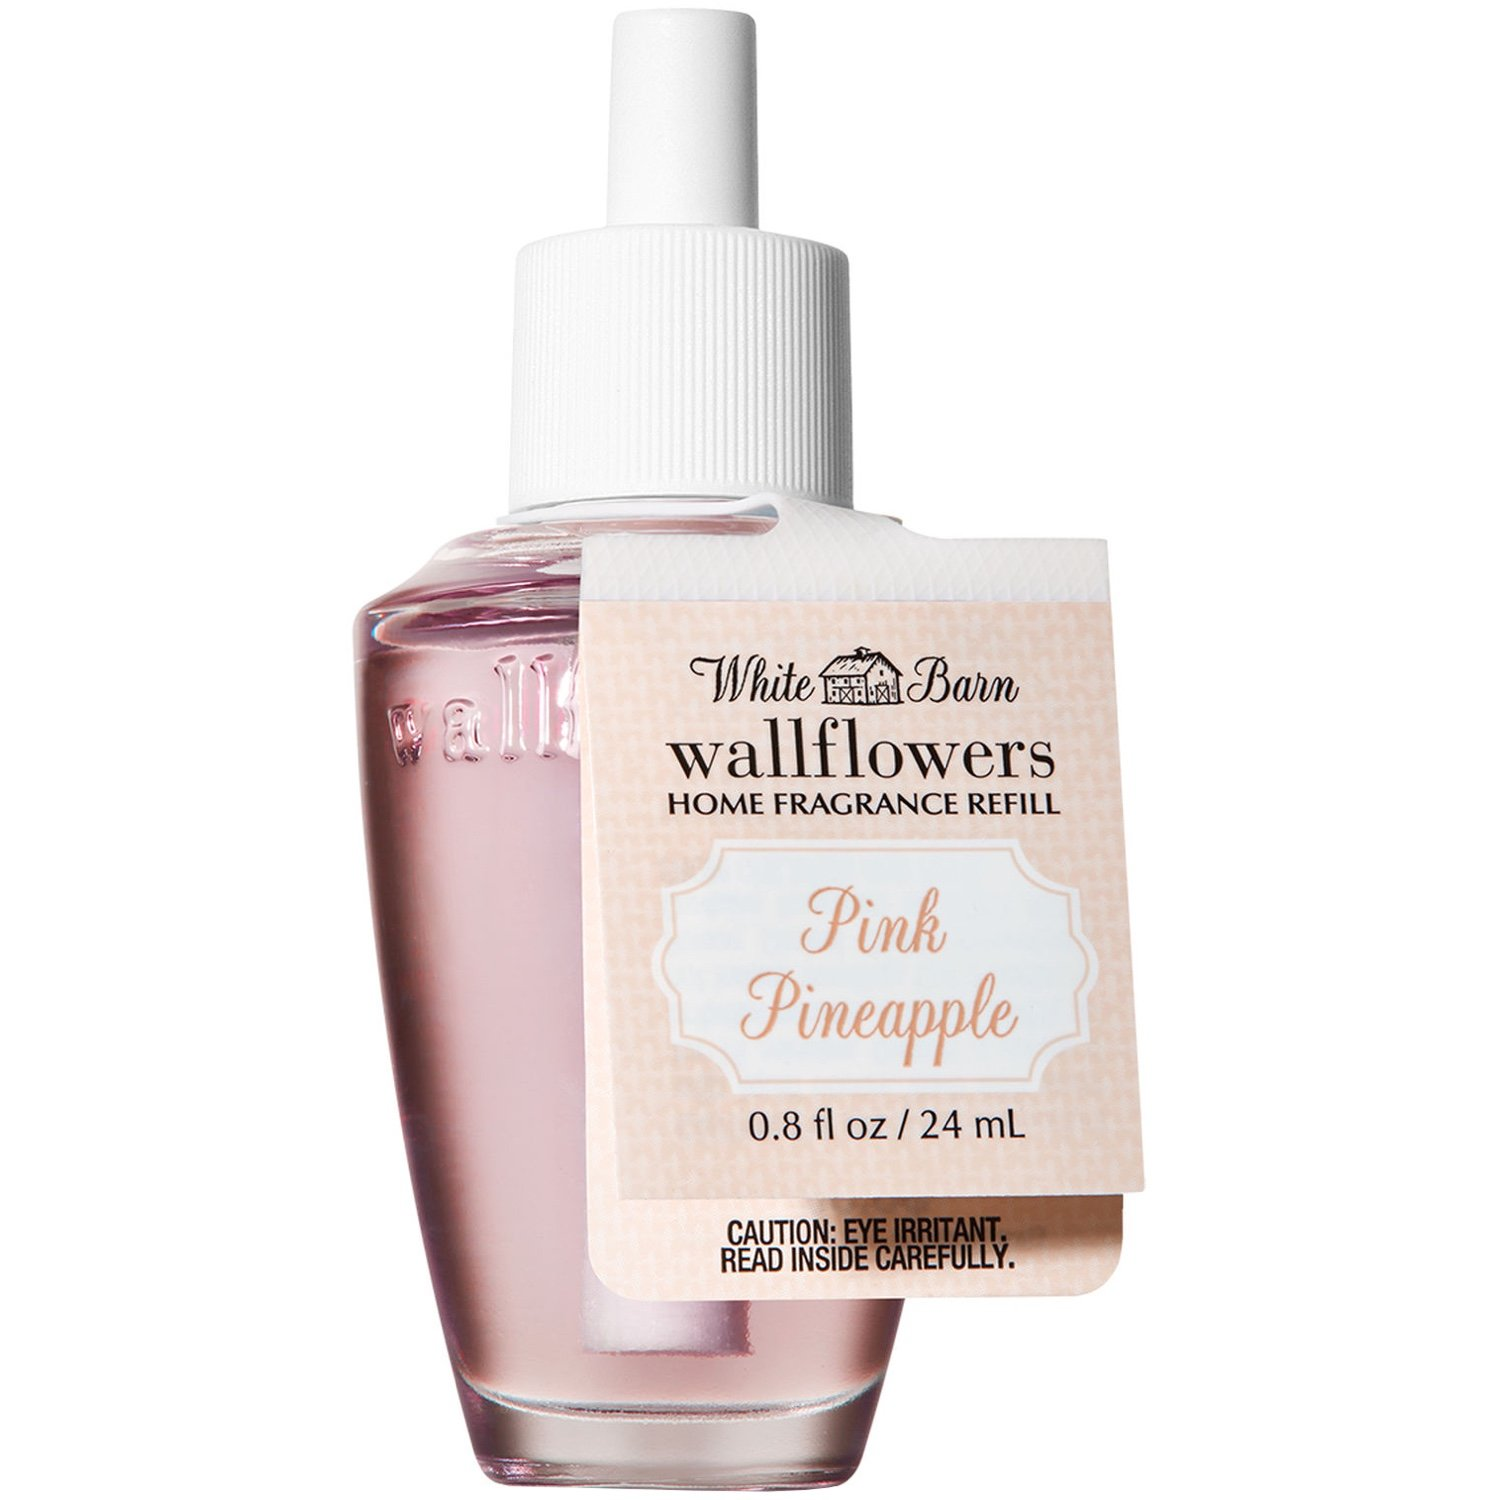 White Barn Bath and Body Works Wallflowers Refill NEW LOOK! (Pink Pineapple)